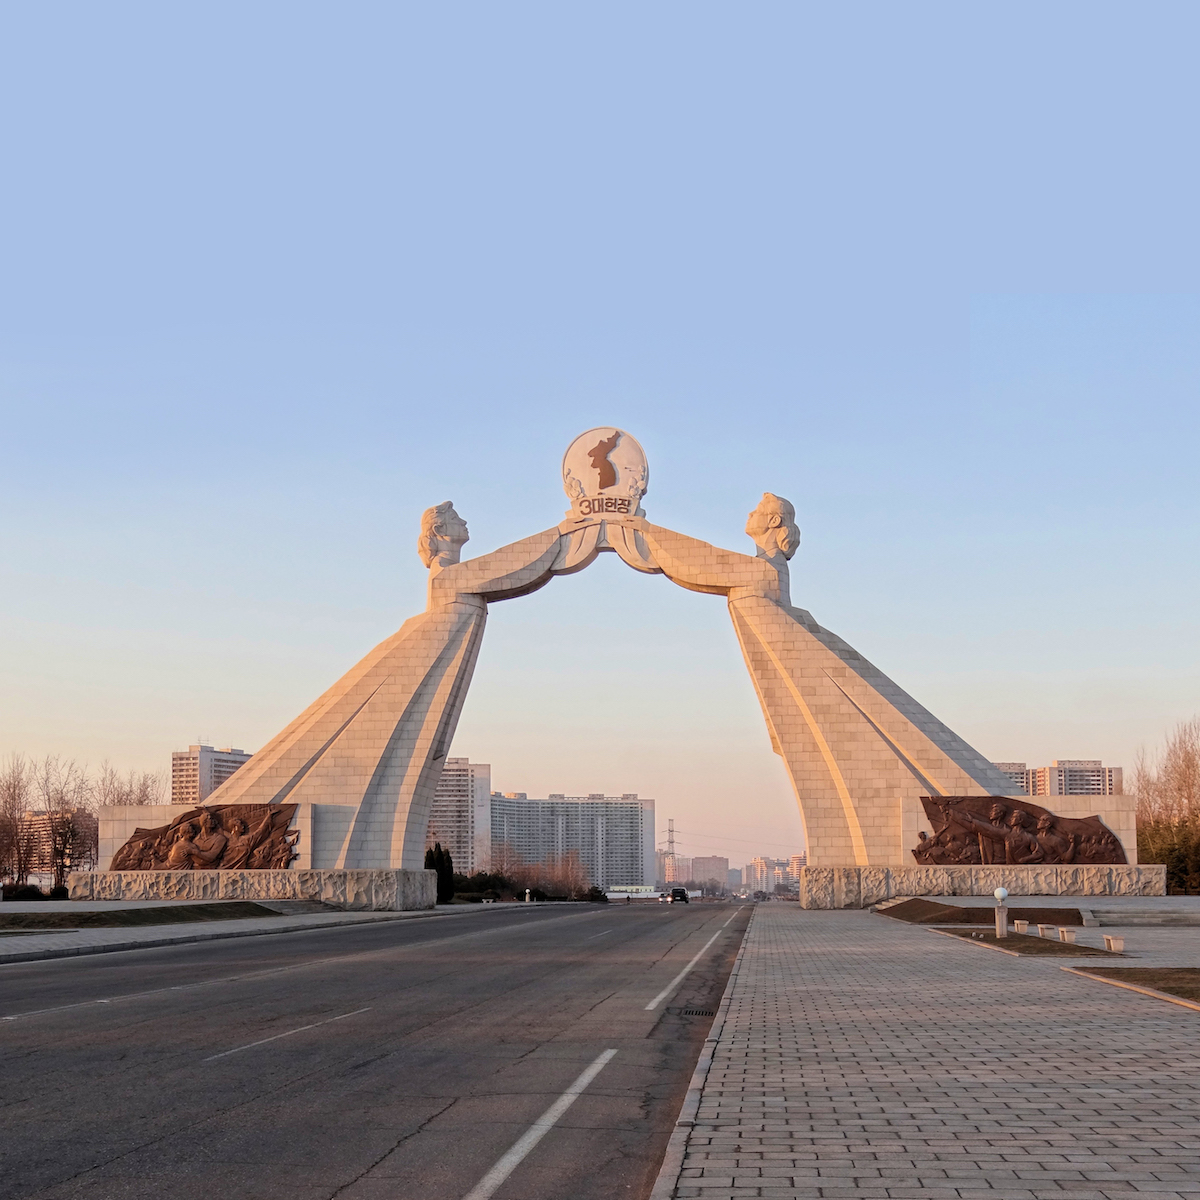 The Arch of Reunification located south of Pyongyang, the capital of North Korea.